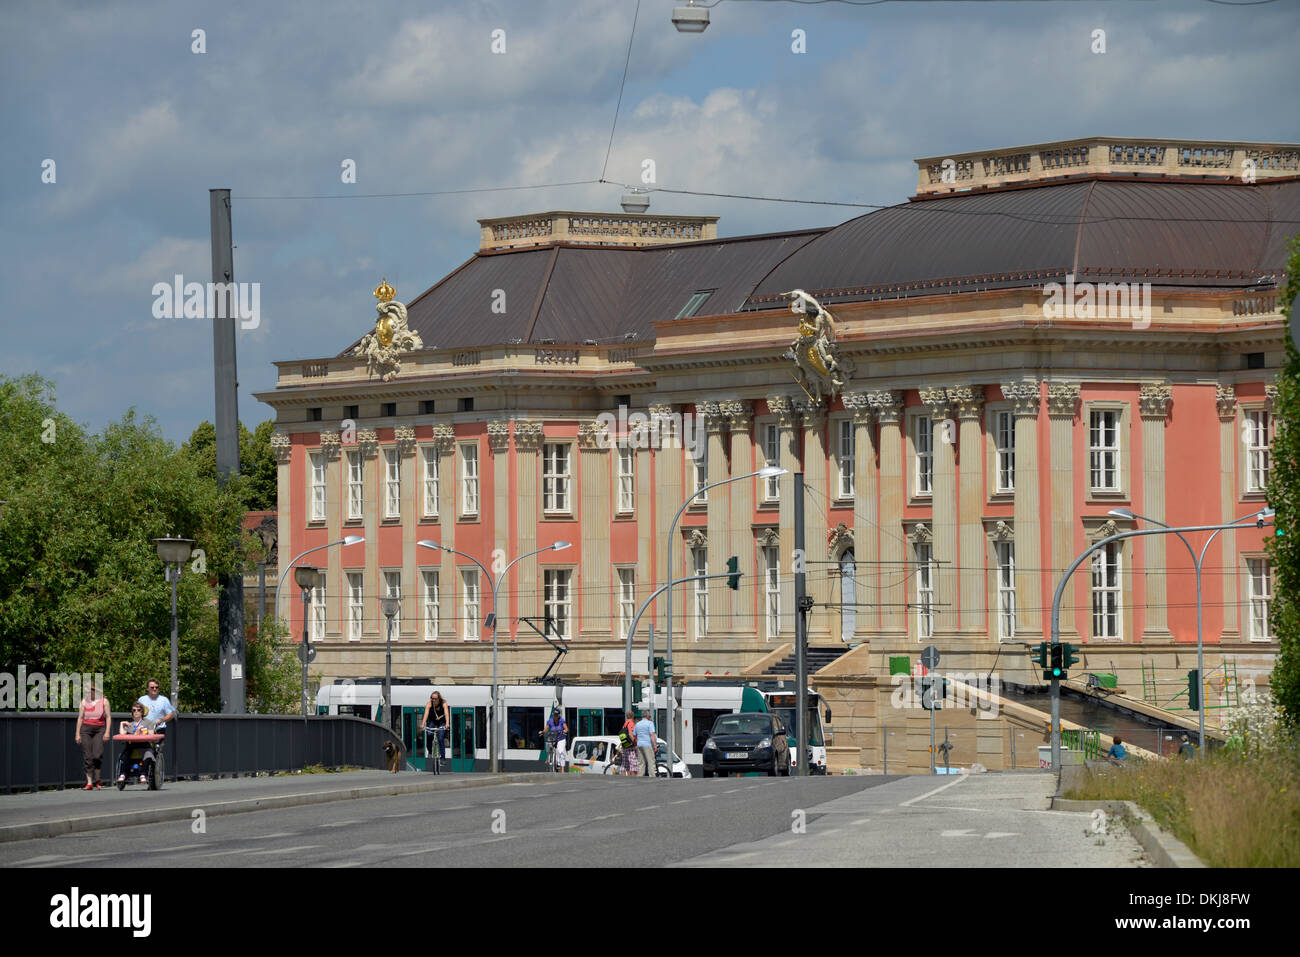 Landtag Stock Photos Landtag Stock Images Alamy